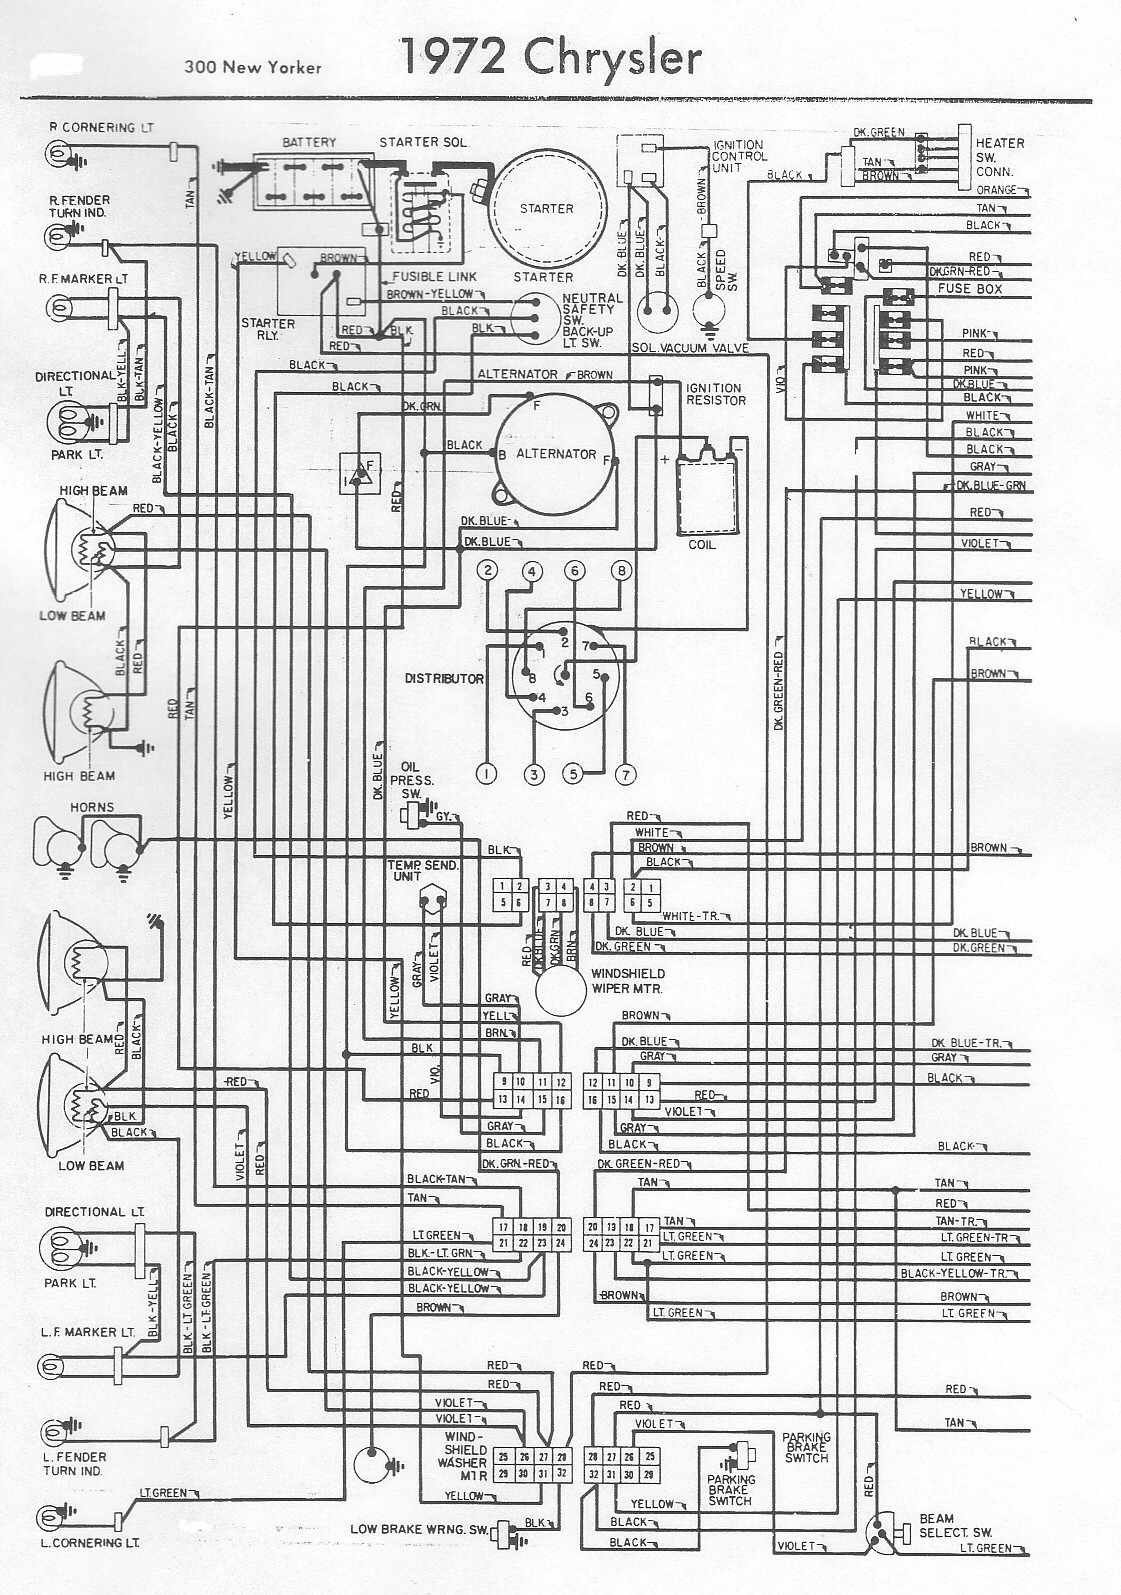 small resolution of 2002 cadillac deville wiring harness wiring library2000 cadillac eldorado electrical diagrams schematics wiring 2002 cadillac eldorado